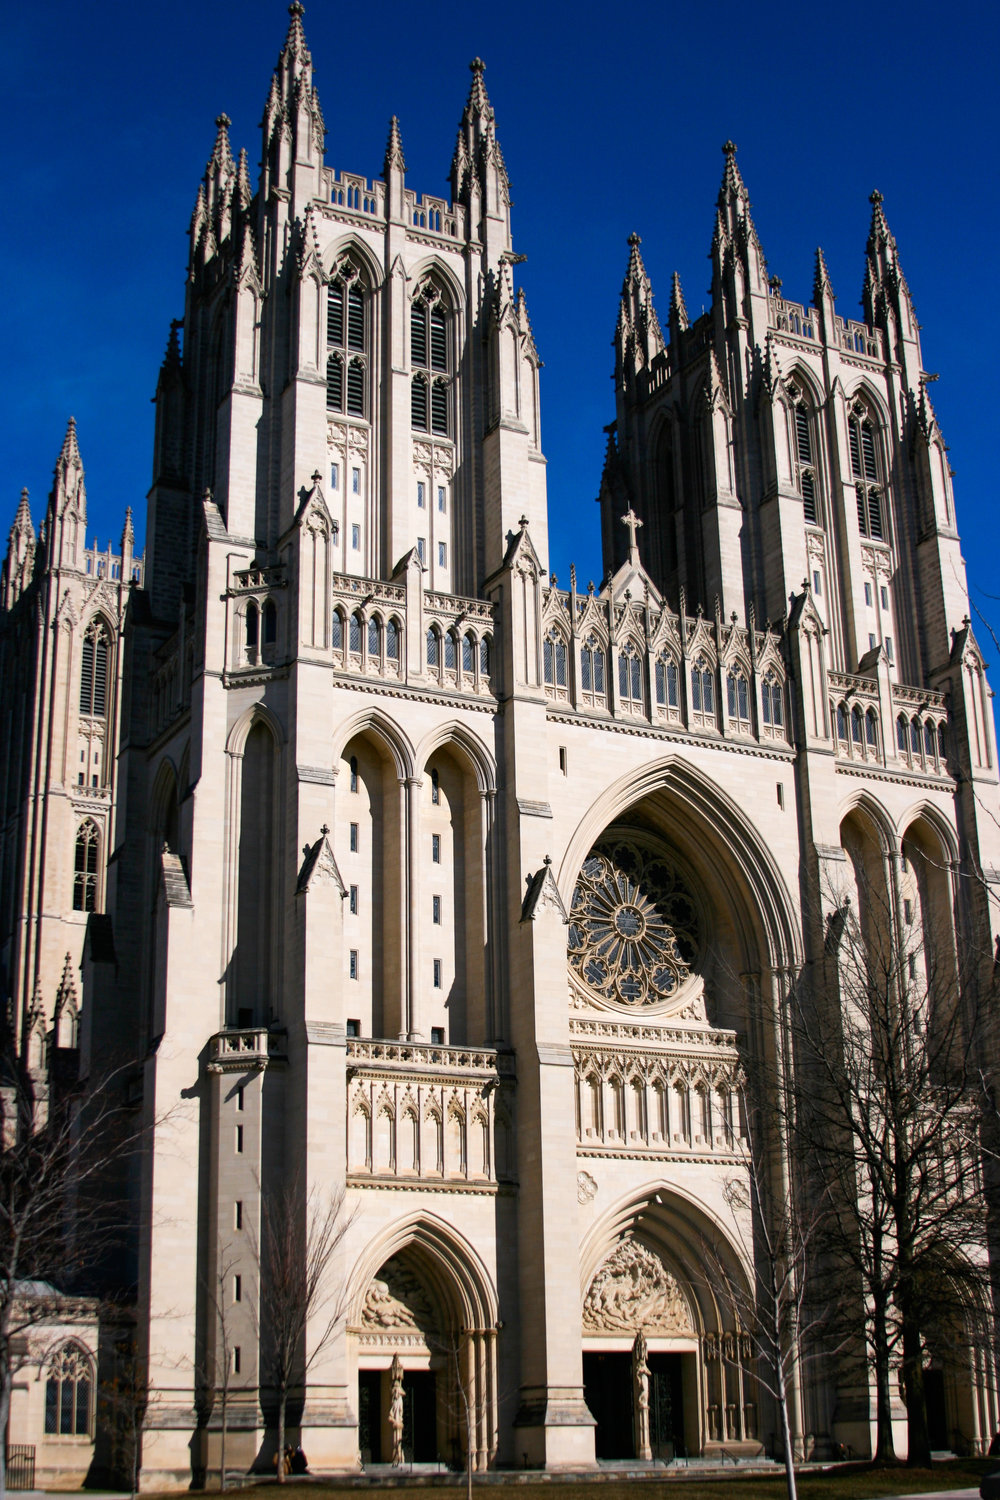 The National Cathedral in Washington D.C.